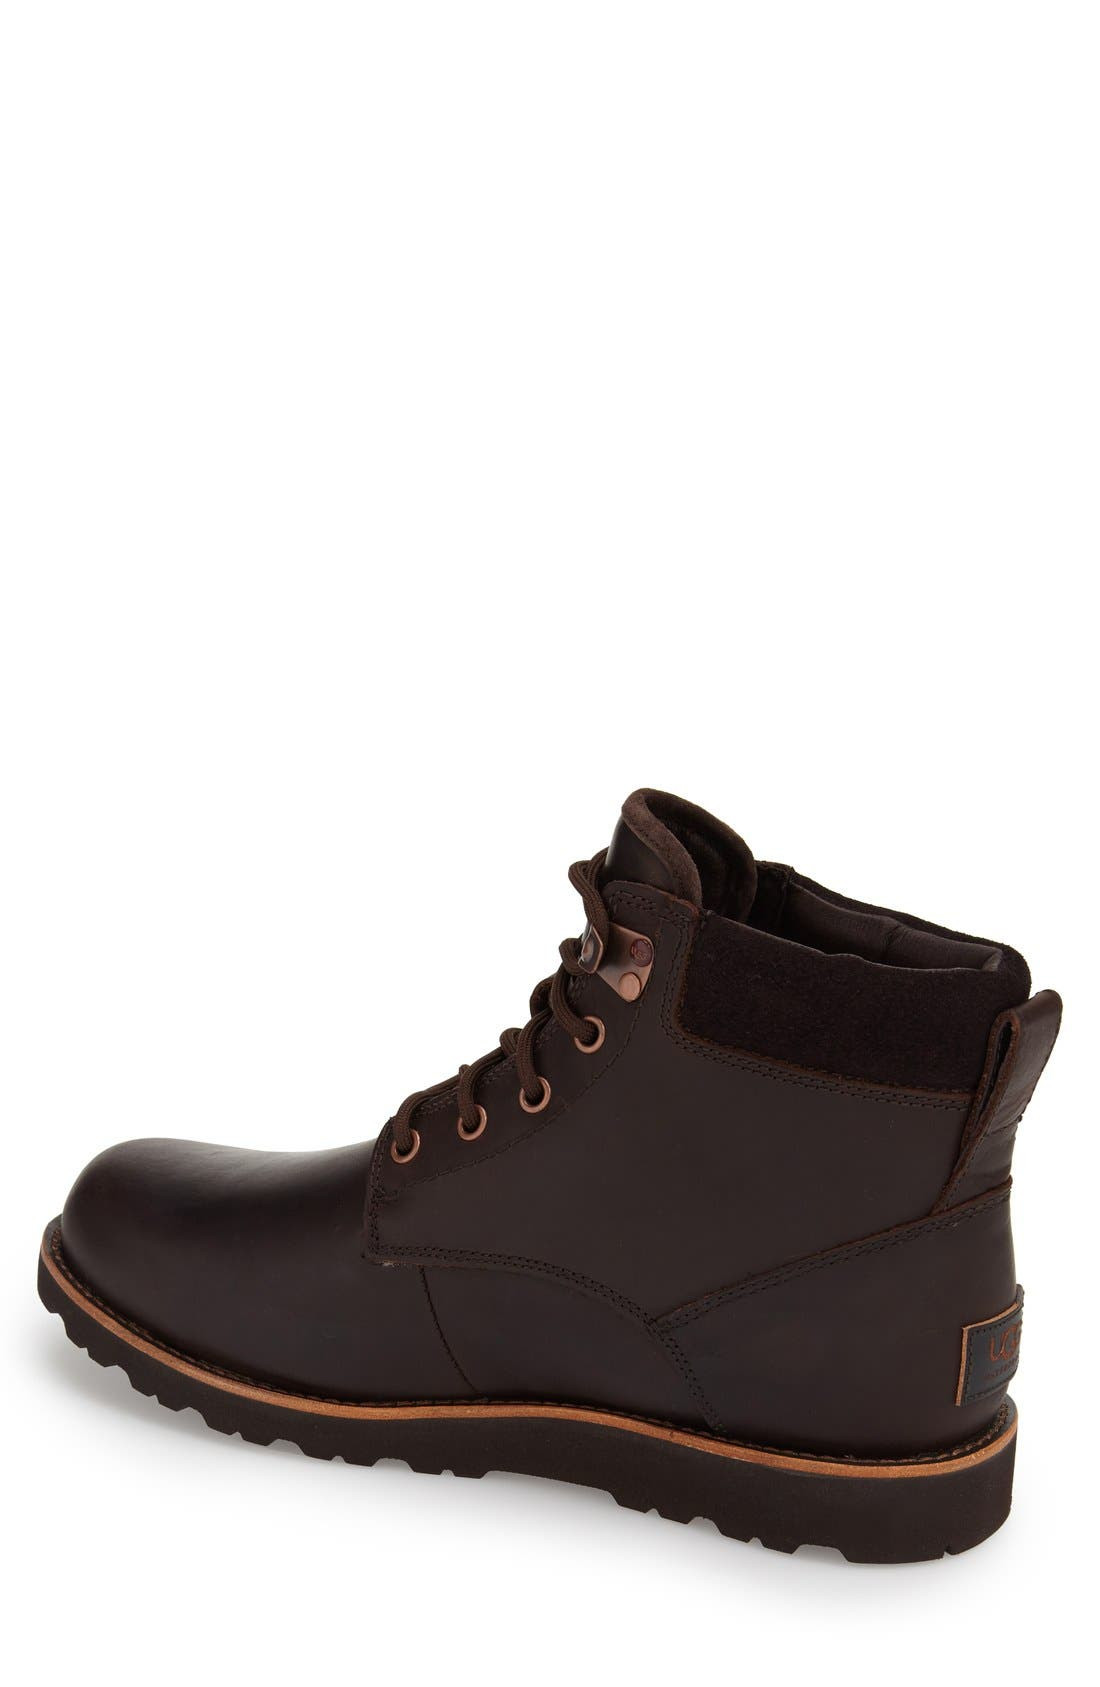 UGG<SUP>®</SUP>, Seton Waterproof Chukka Boot, Alternate thumbnail 4, color, STOUT